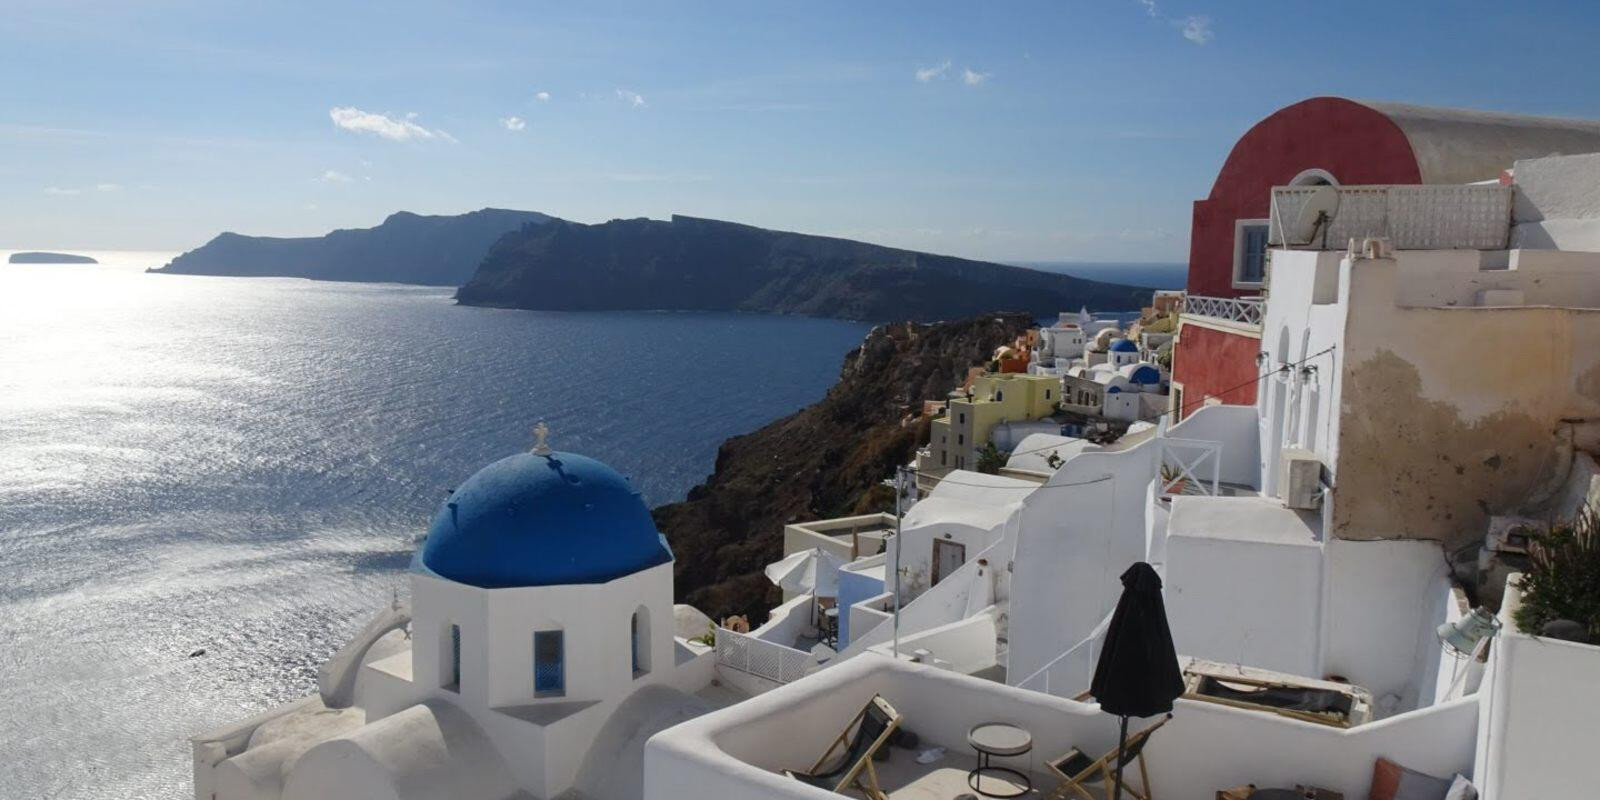 15 days on board from Corfu to Santorini sailing the Peloponnese